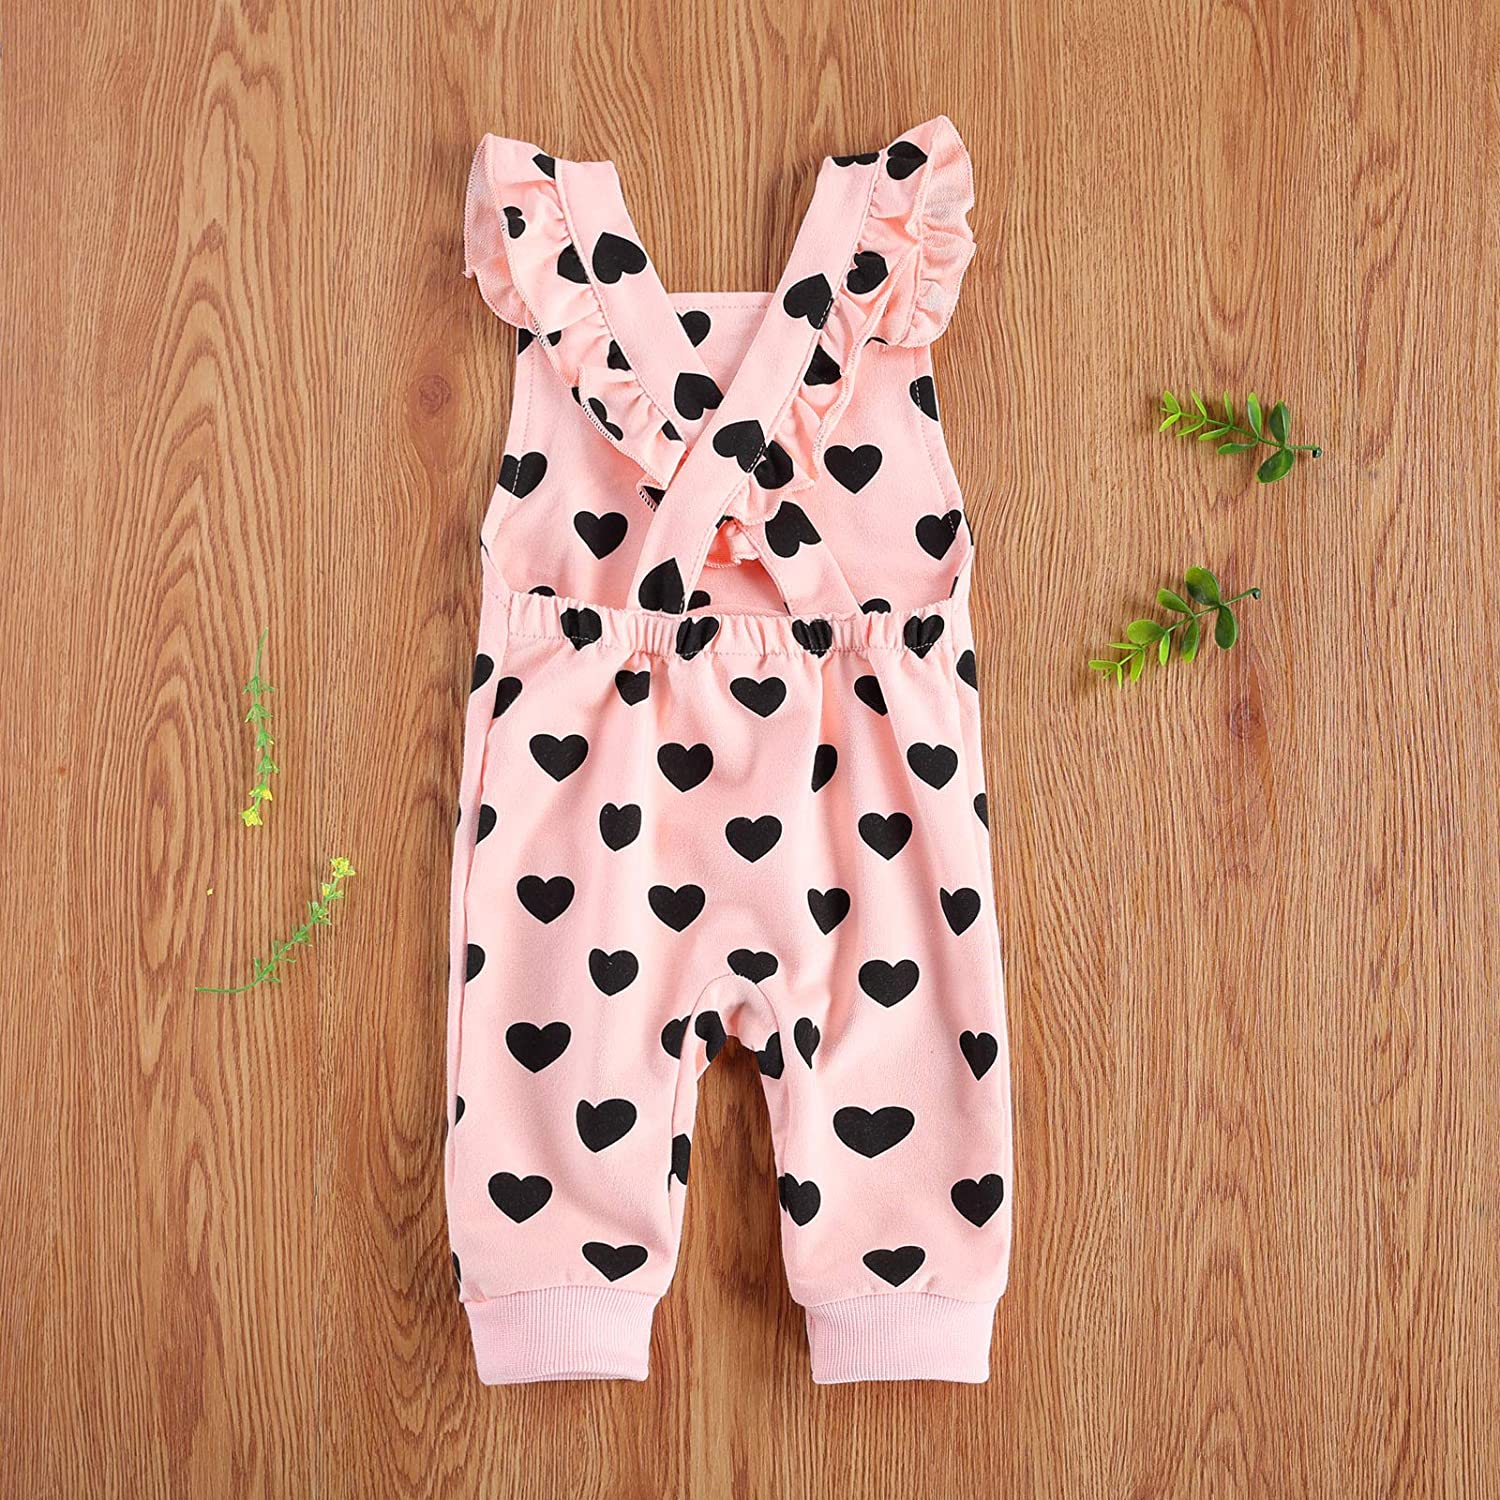 VIENNAR Cute Toddler Baby Heart Printed Overalls Ruffled Rompers Infant Newborn Suspender Pants with Buttons Pocket